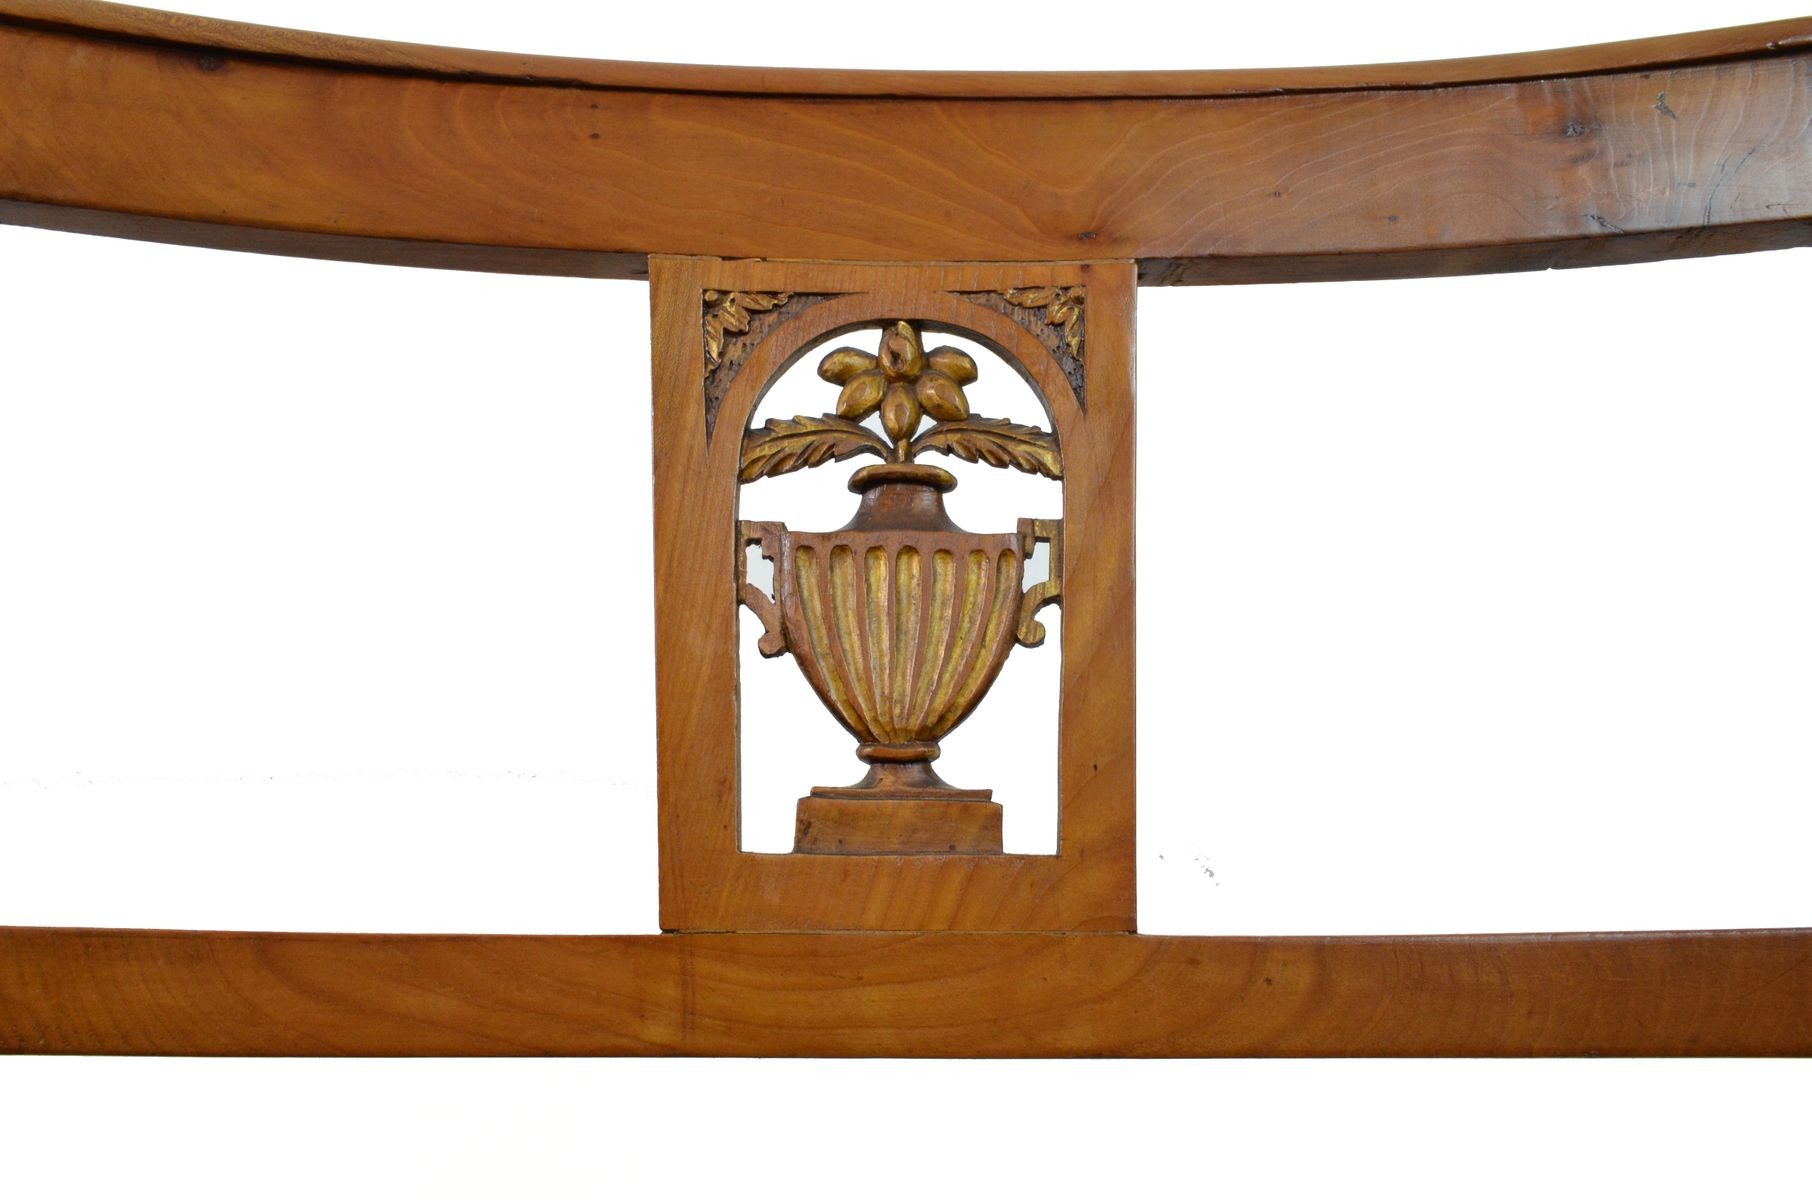 18th Century Louis XVI Bench for sale at Pamono